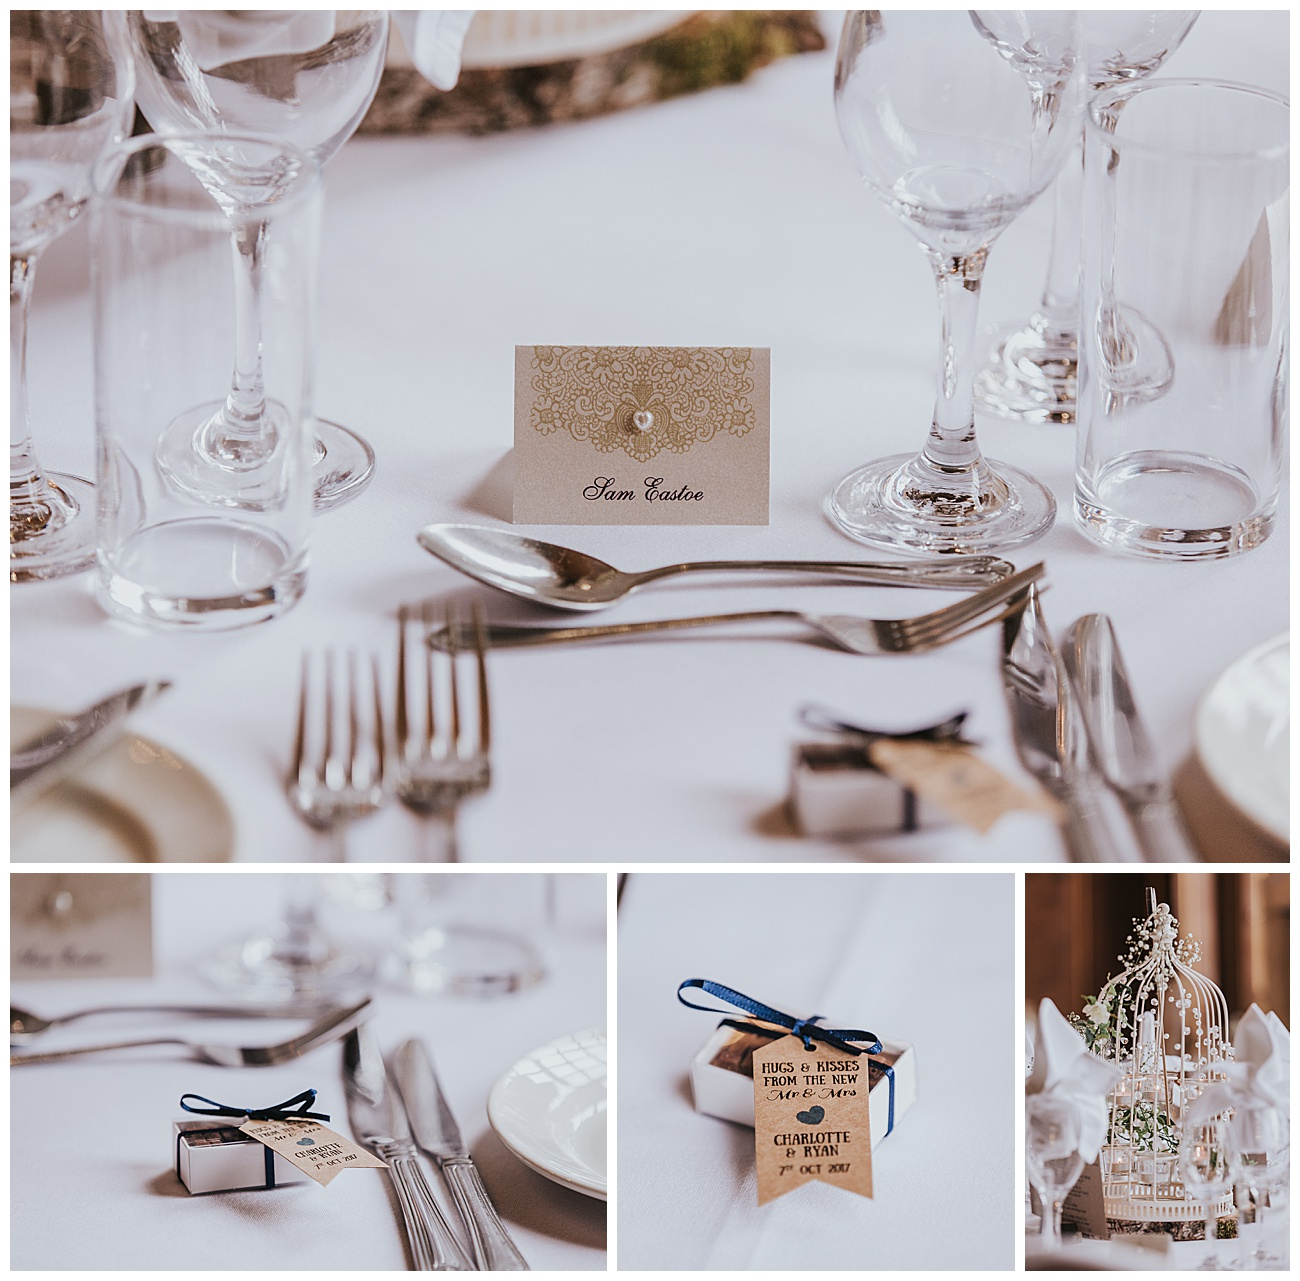 detail shots of the wedding breakfast tables